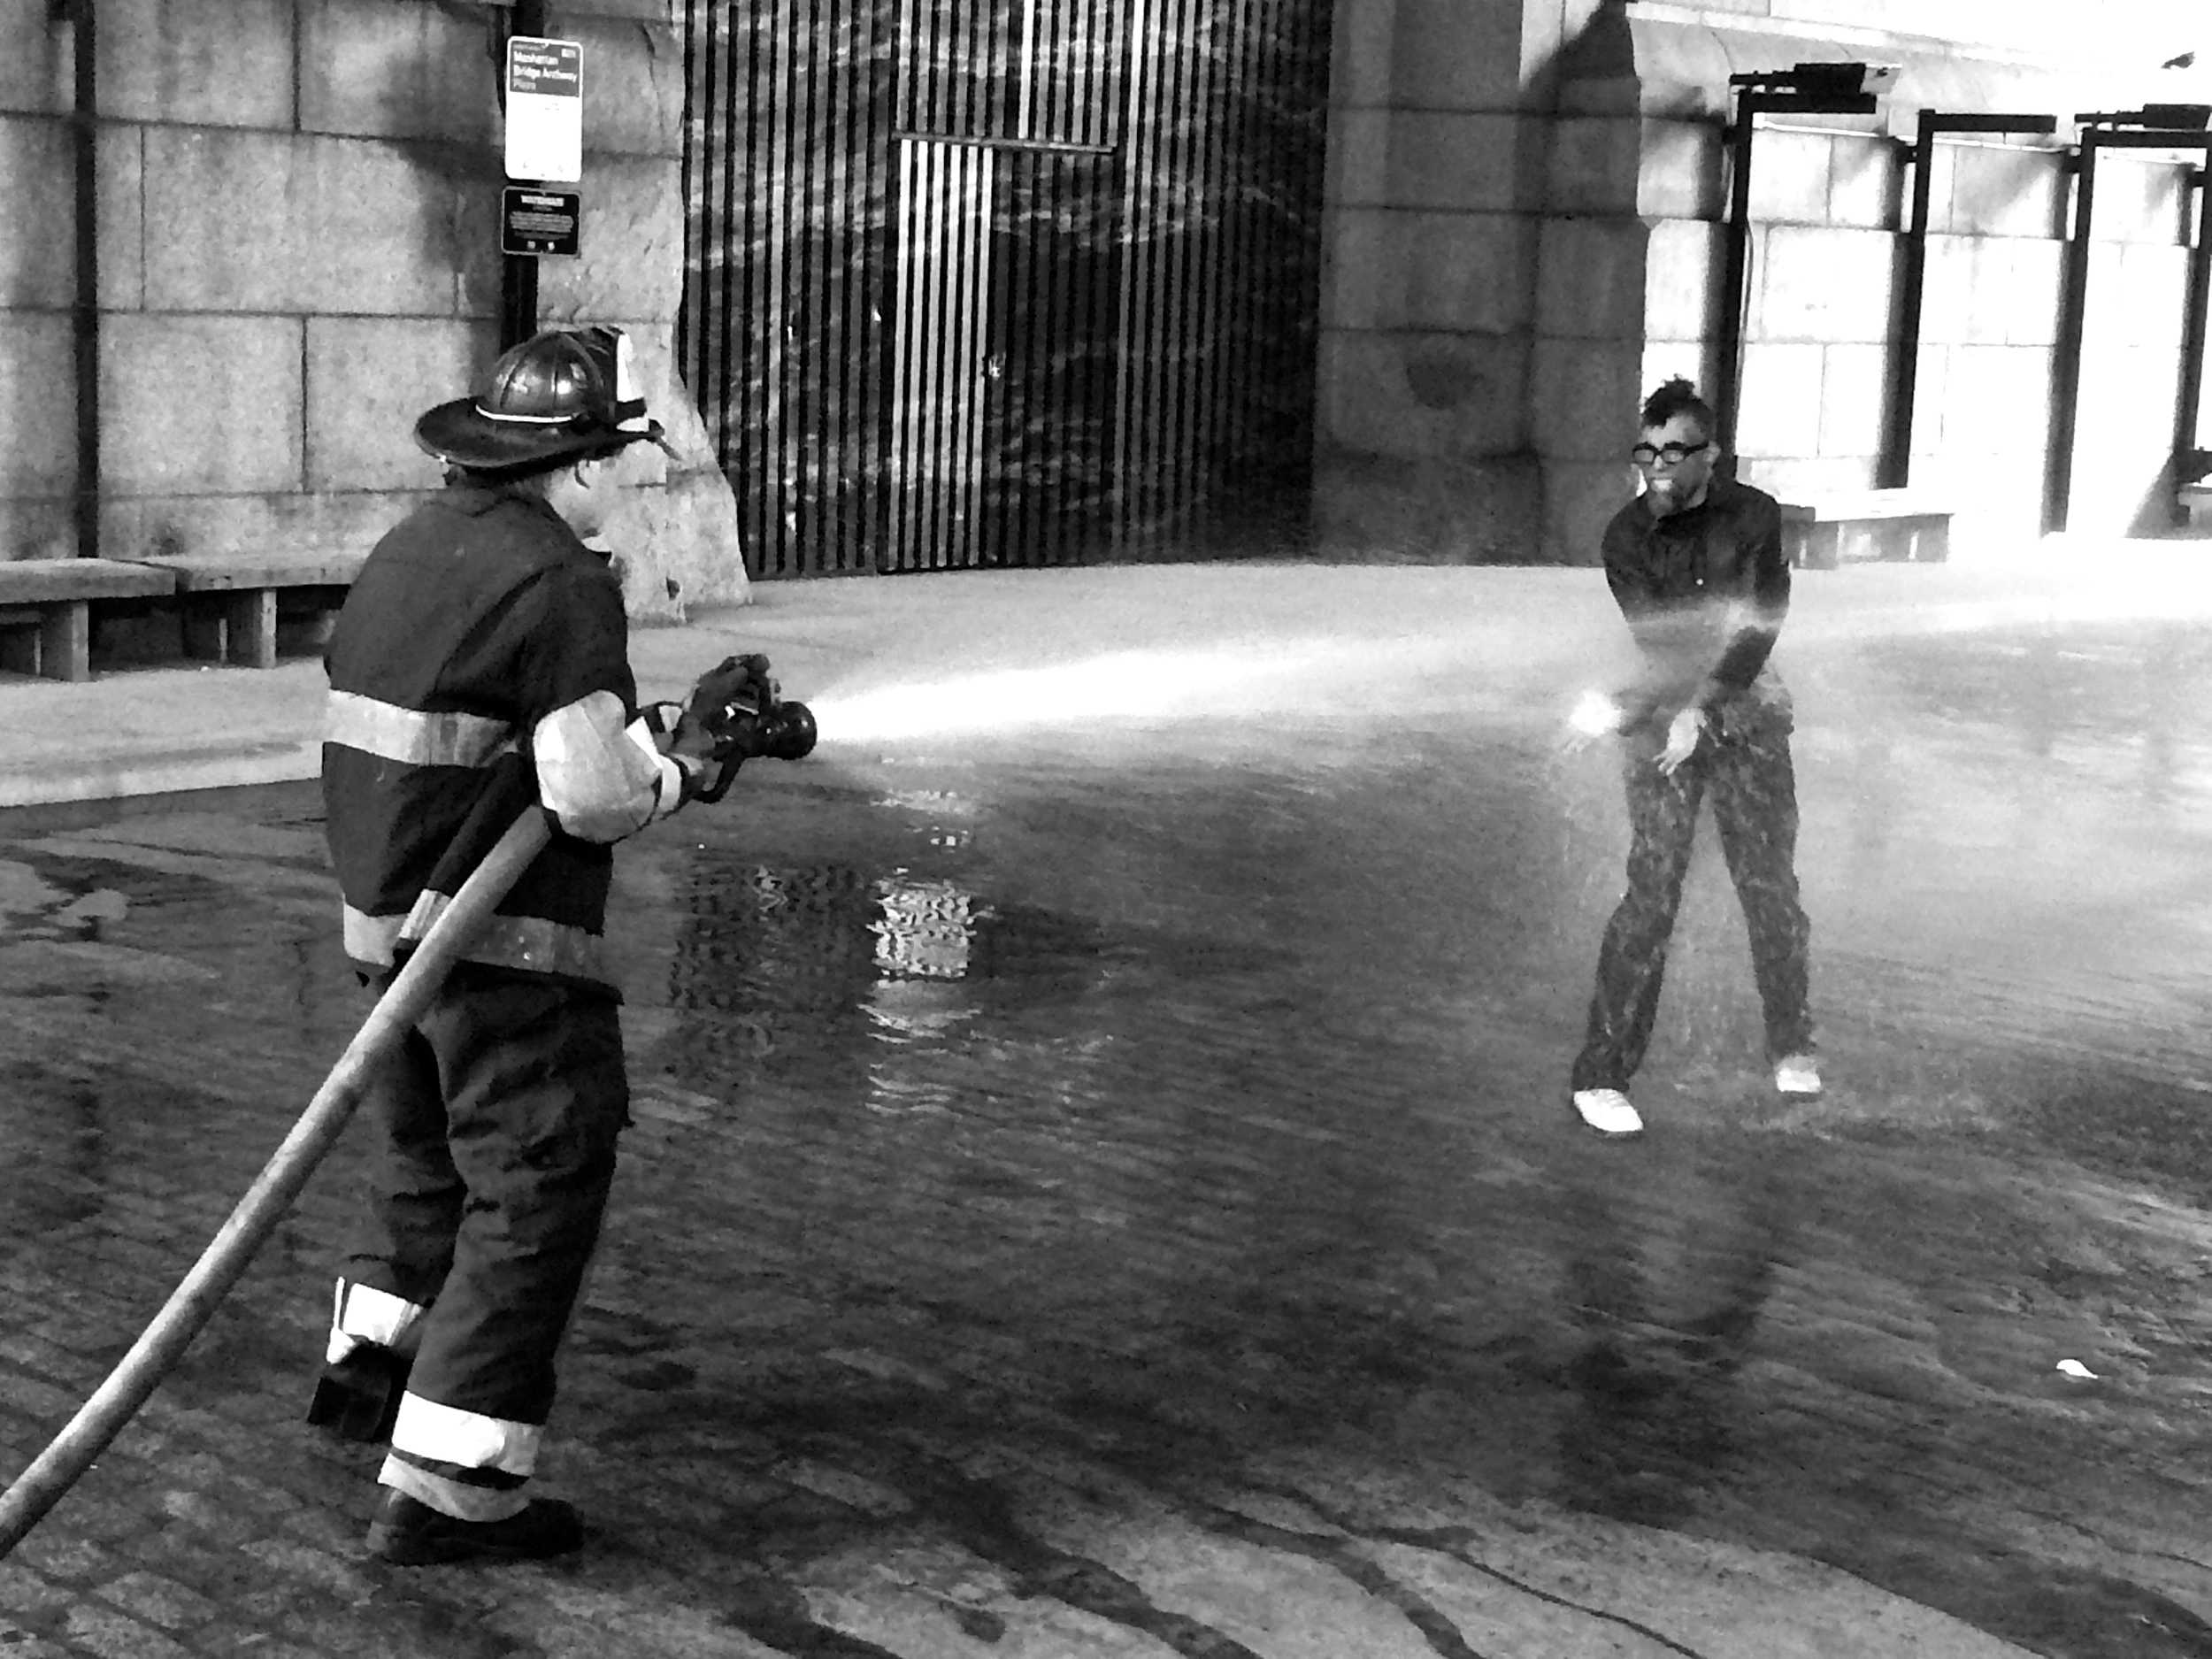 Dread Scott faces this fireman and the blast of water coming from the hose.